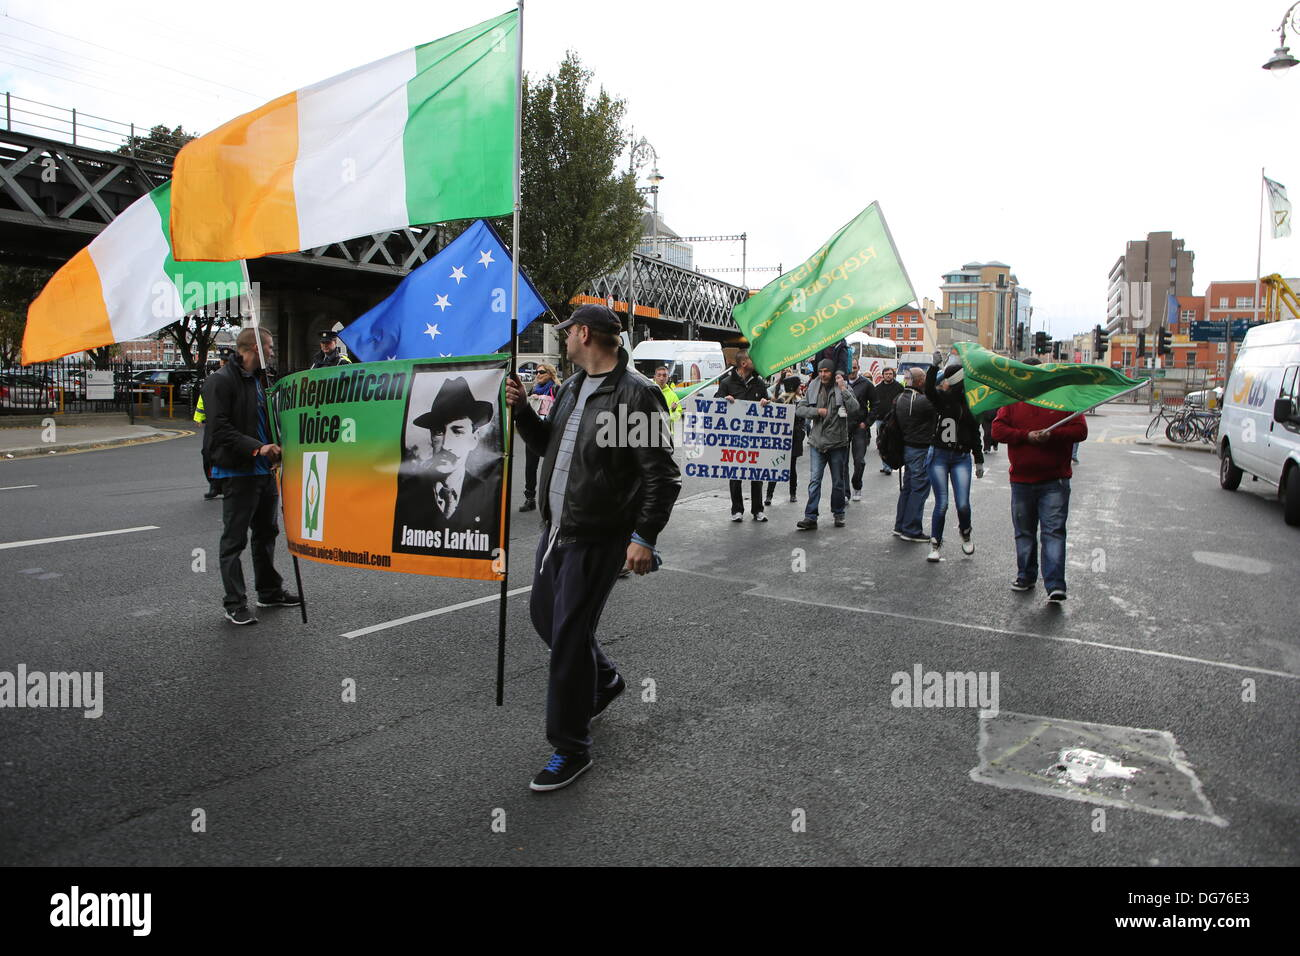 Dublin, Ireland. 15th October 2013. Protesters From The ...